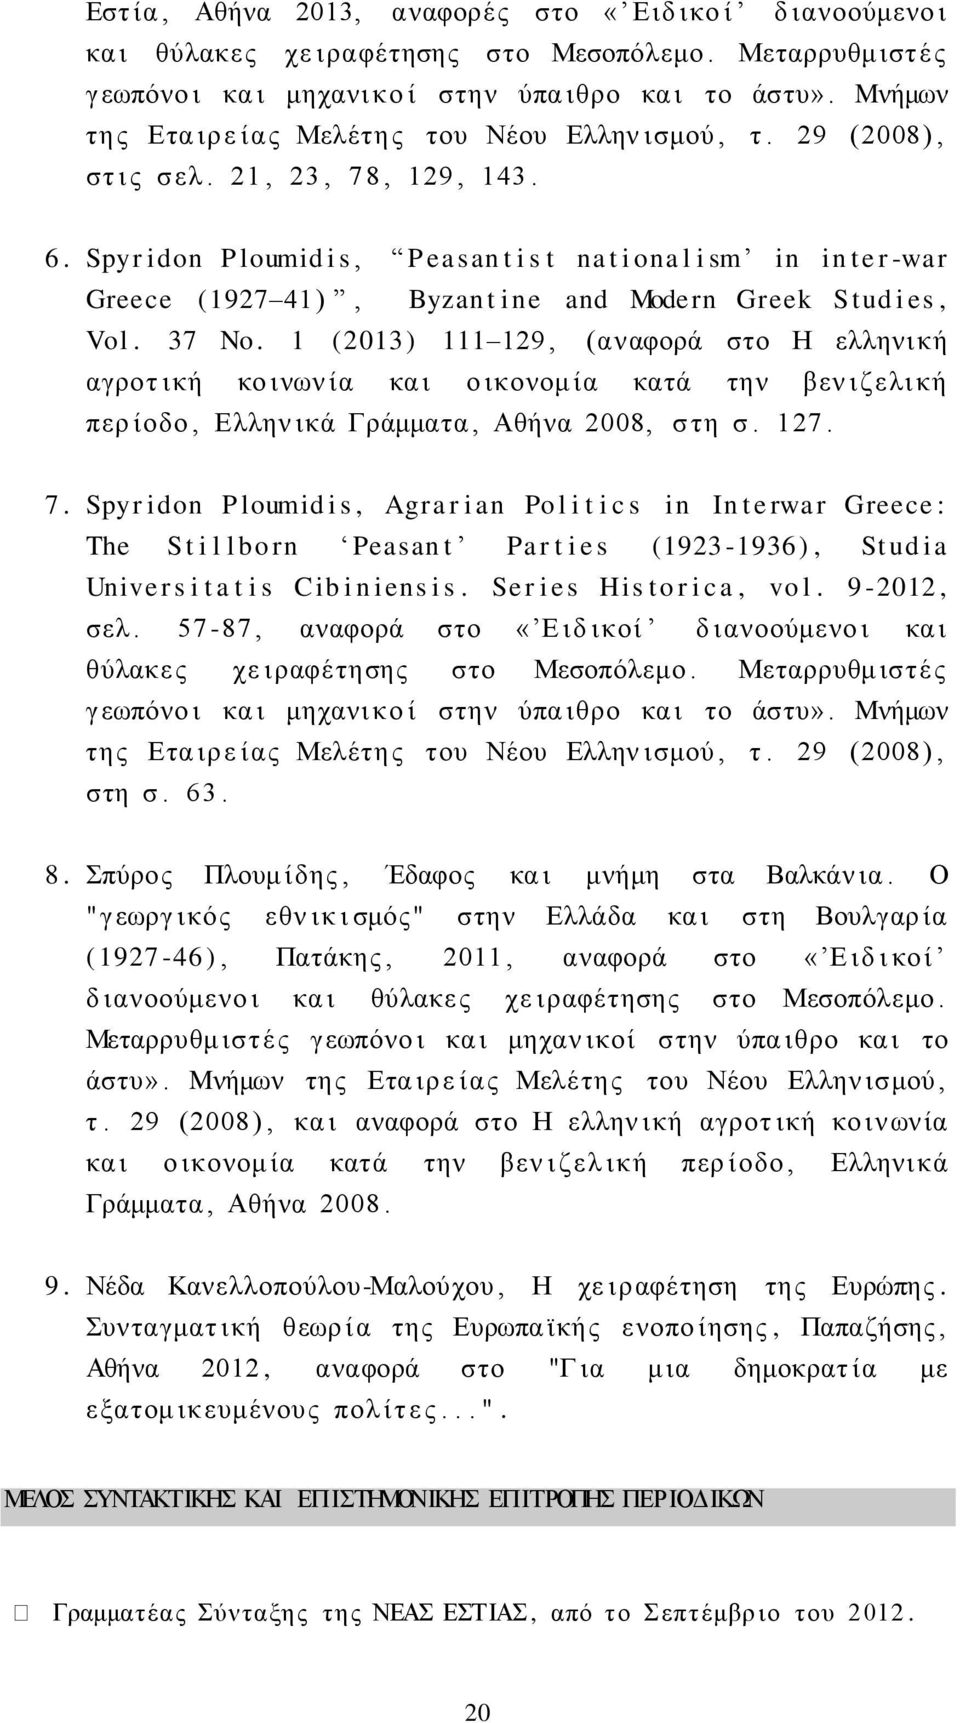 Spyr idon P loumid i s, P easan t i s t na t i ona l i sm in in t e r -war Greece (1927 41), Byzan t ine and Modern Greek S tud i es, Vol. 37 No.